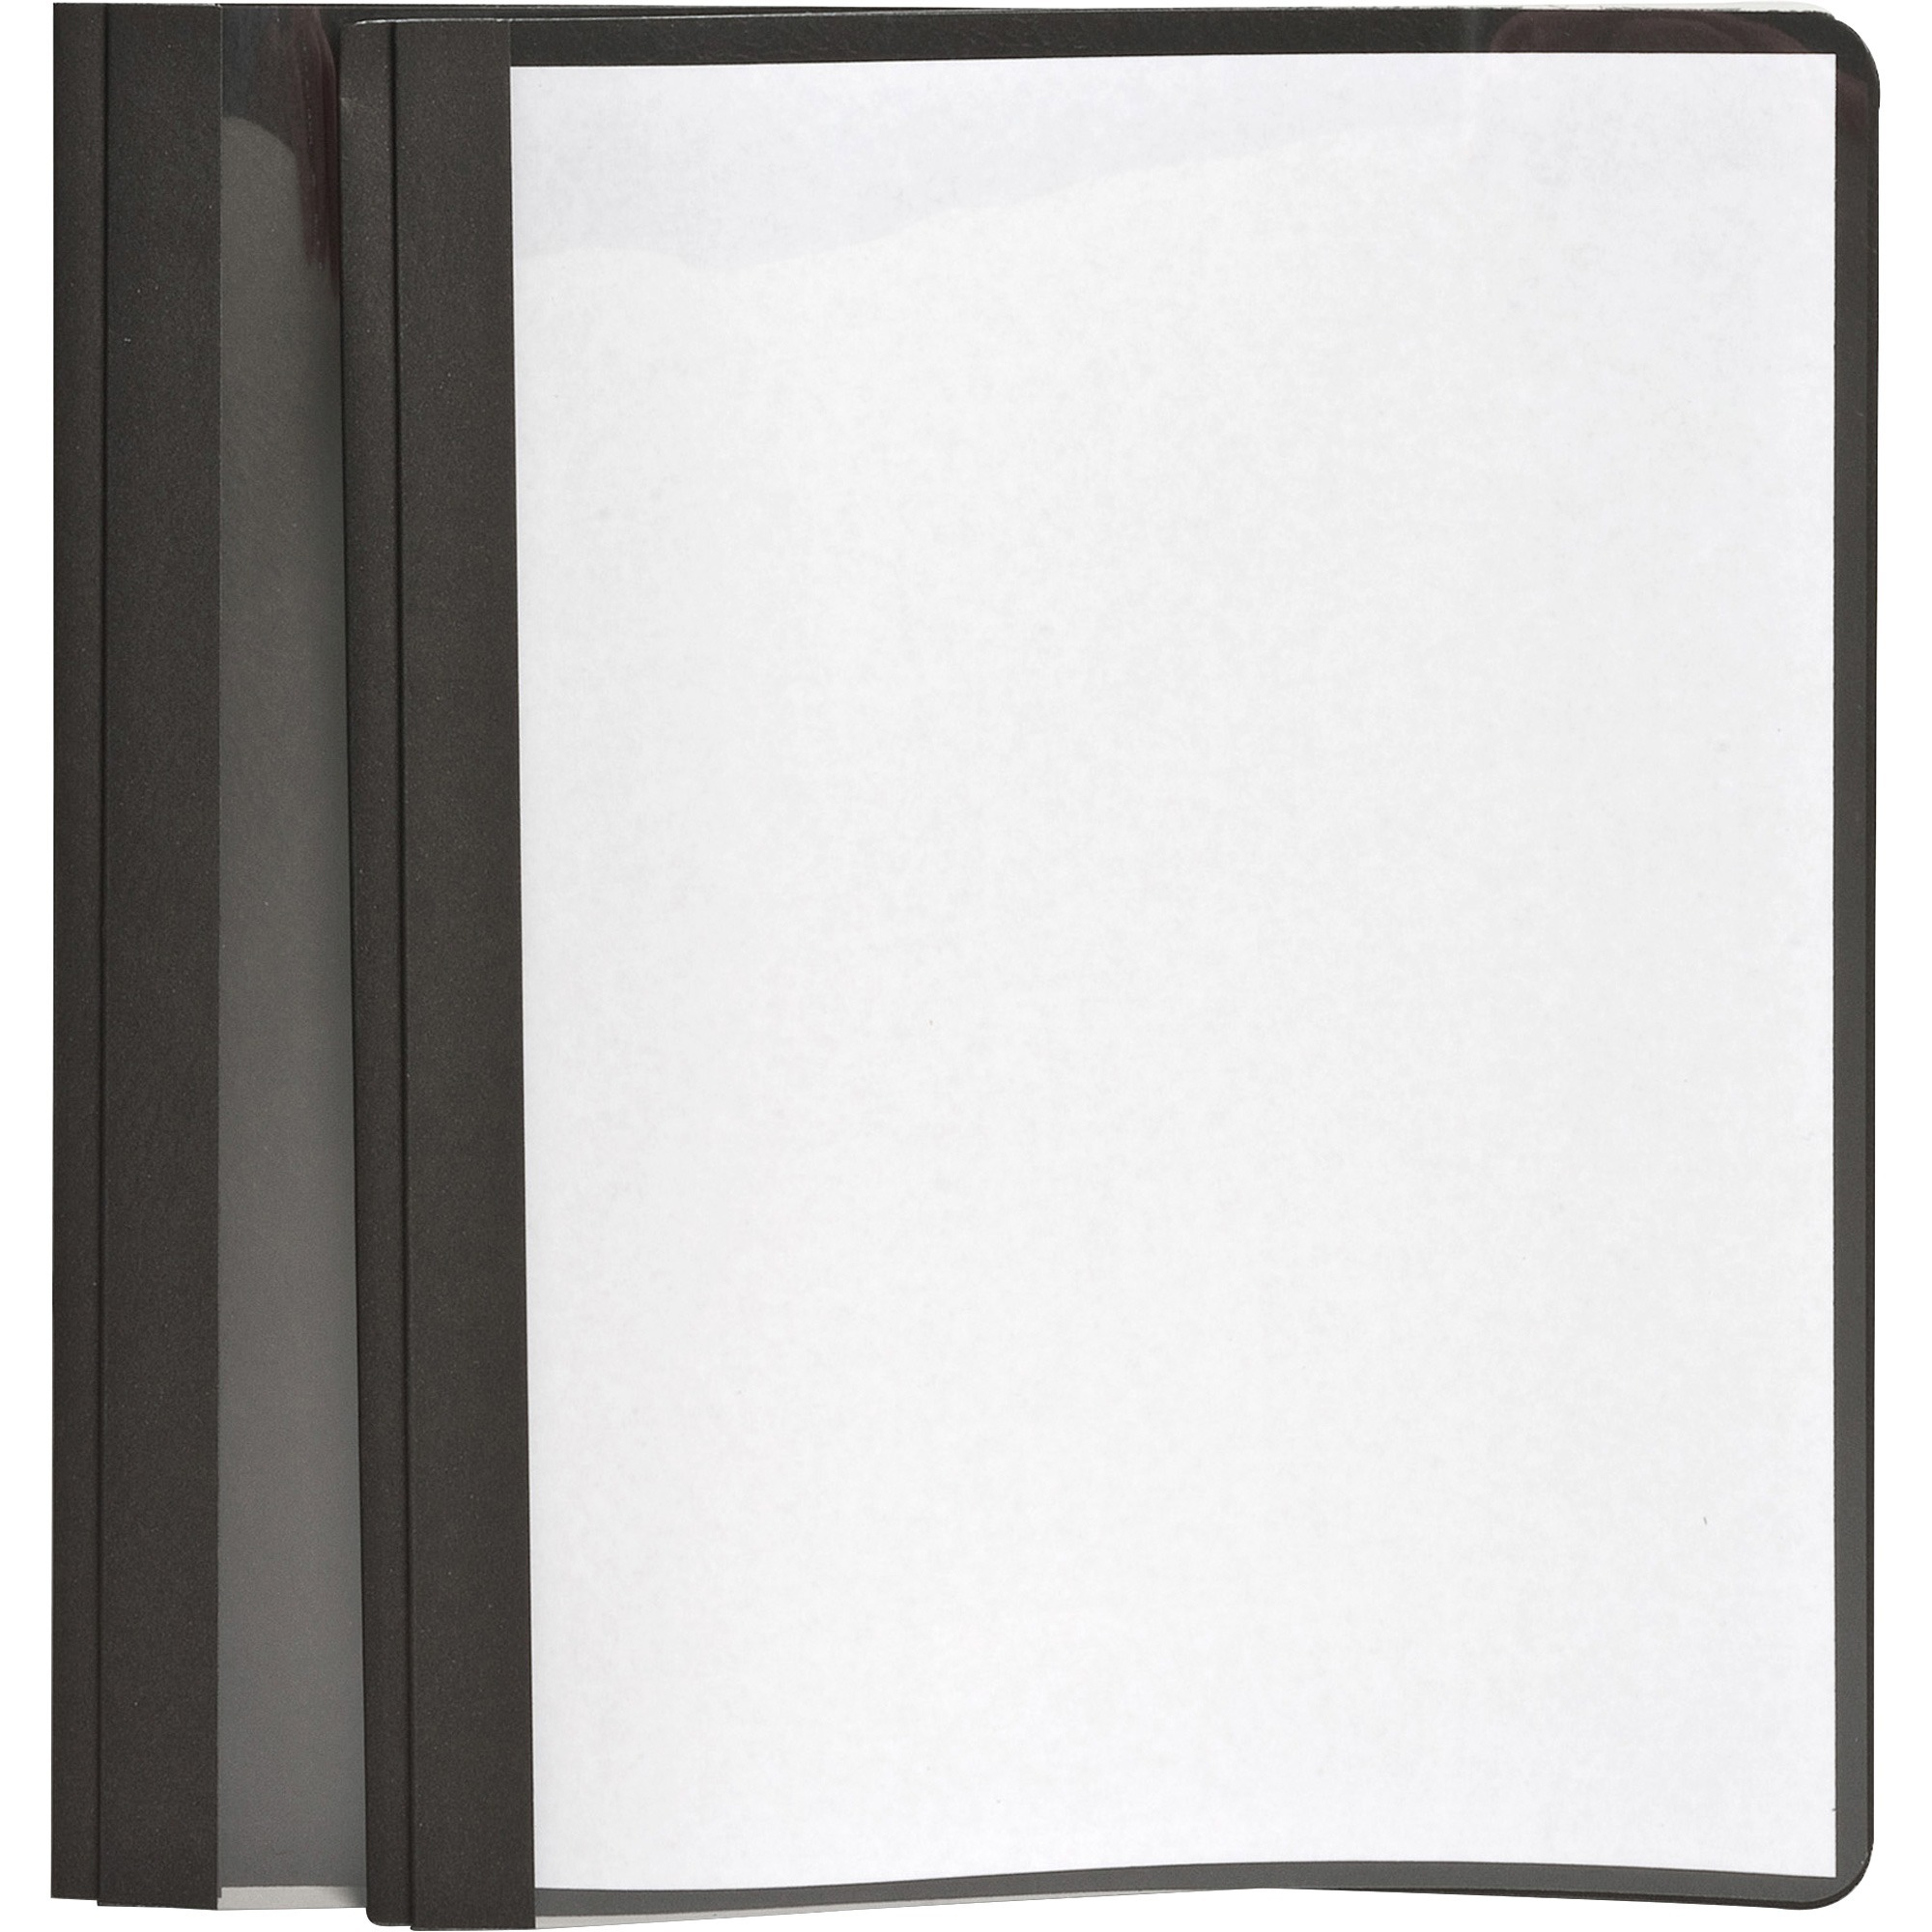 Oxford, OXF55806, Clear Front Report Covers, 25 / Box, Black,Clear